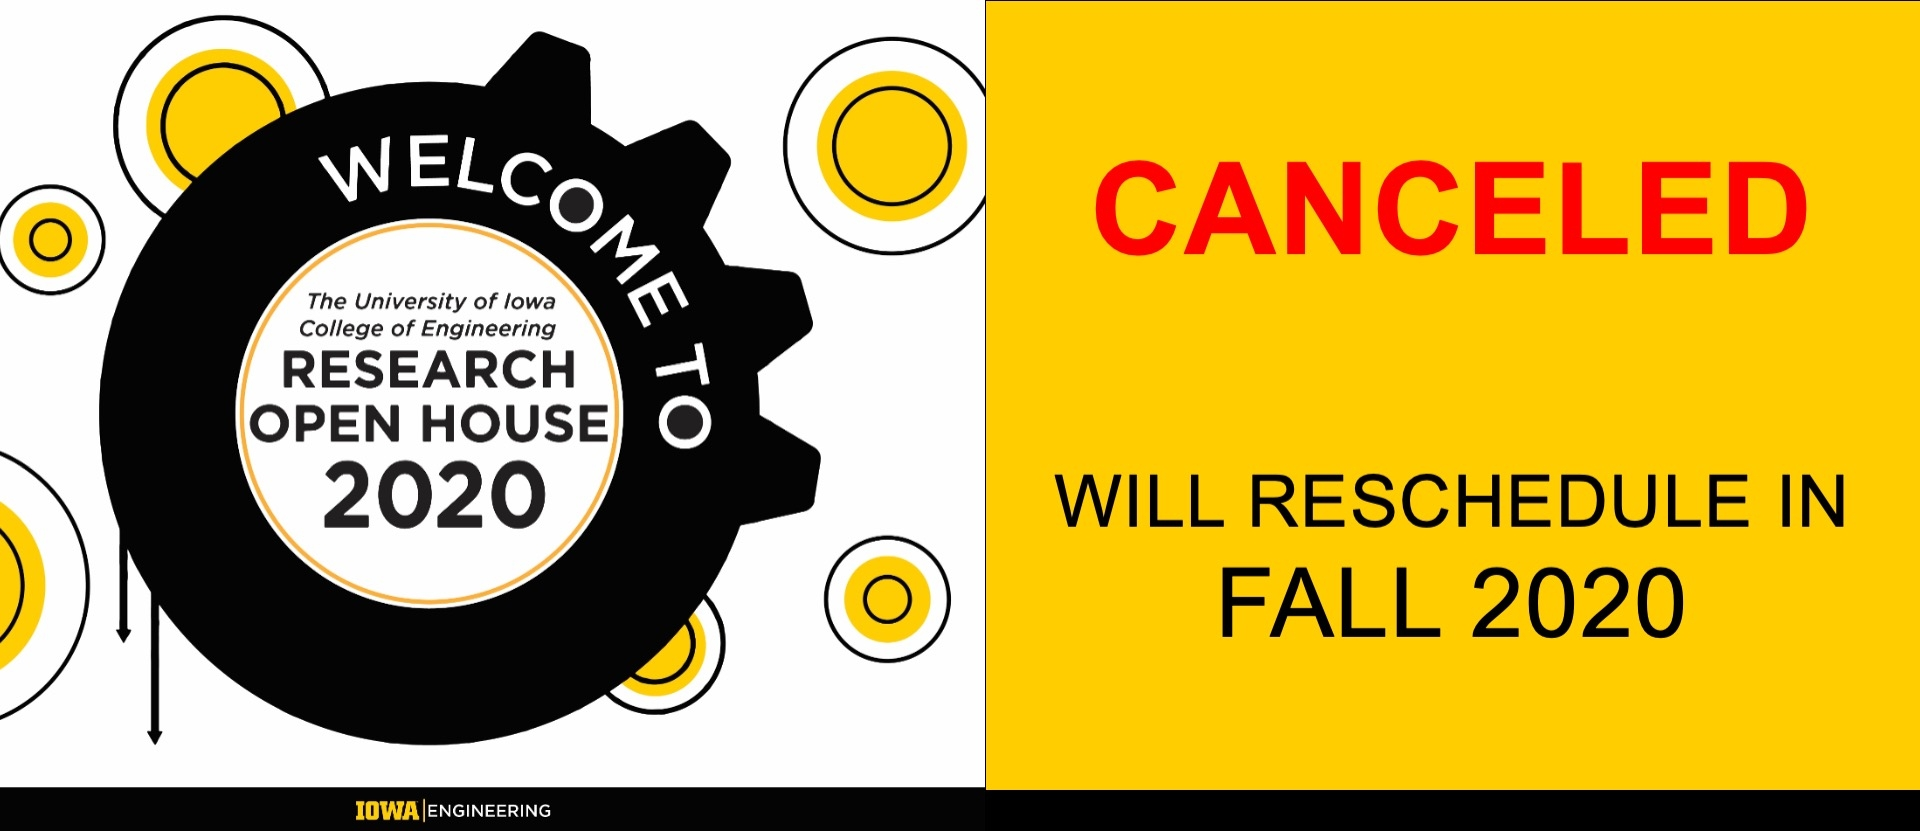 Research Open house canceled